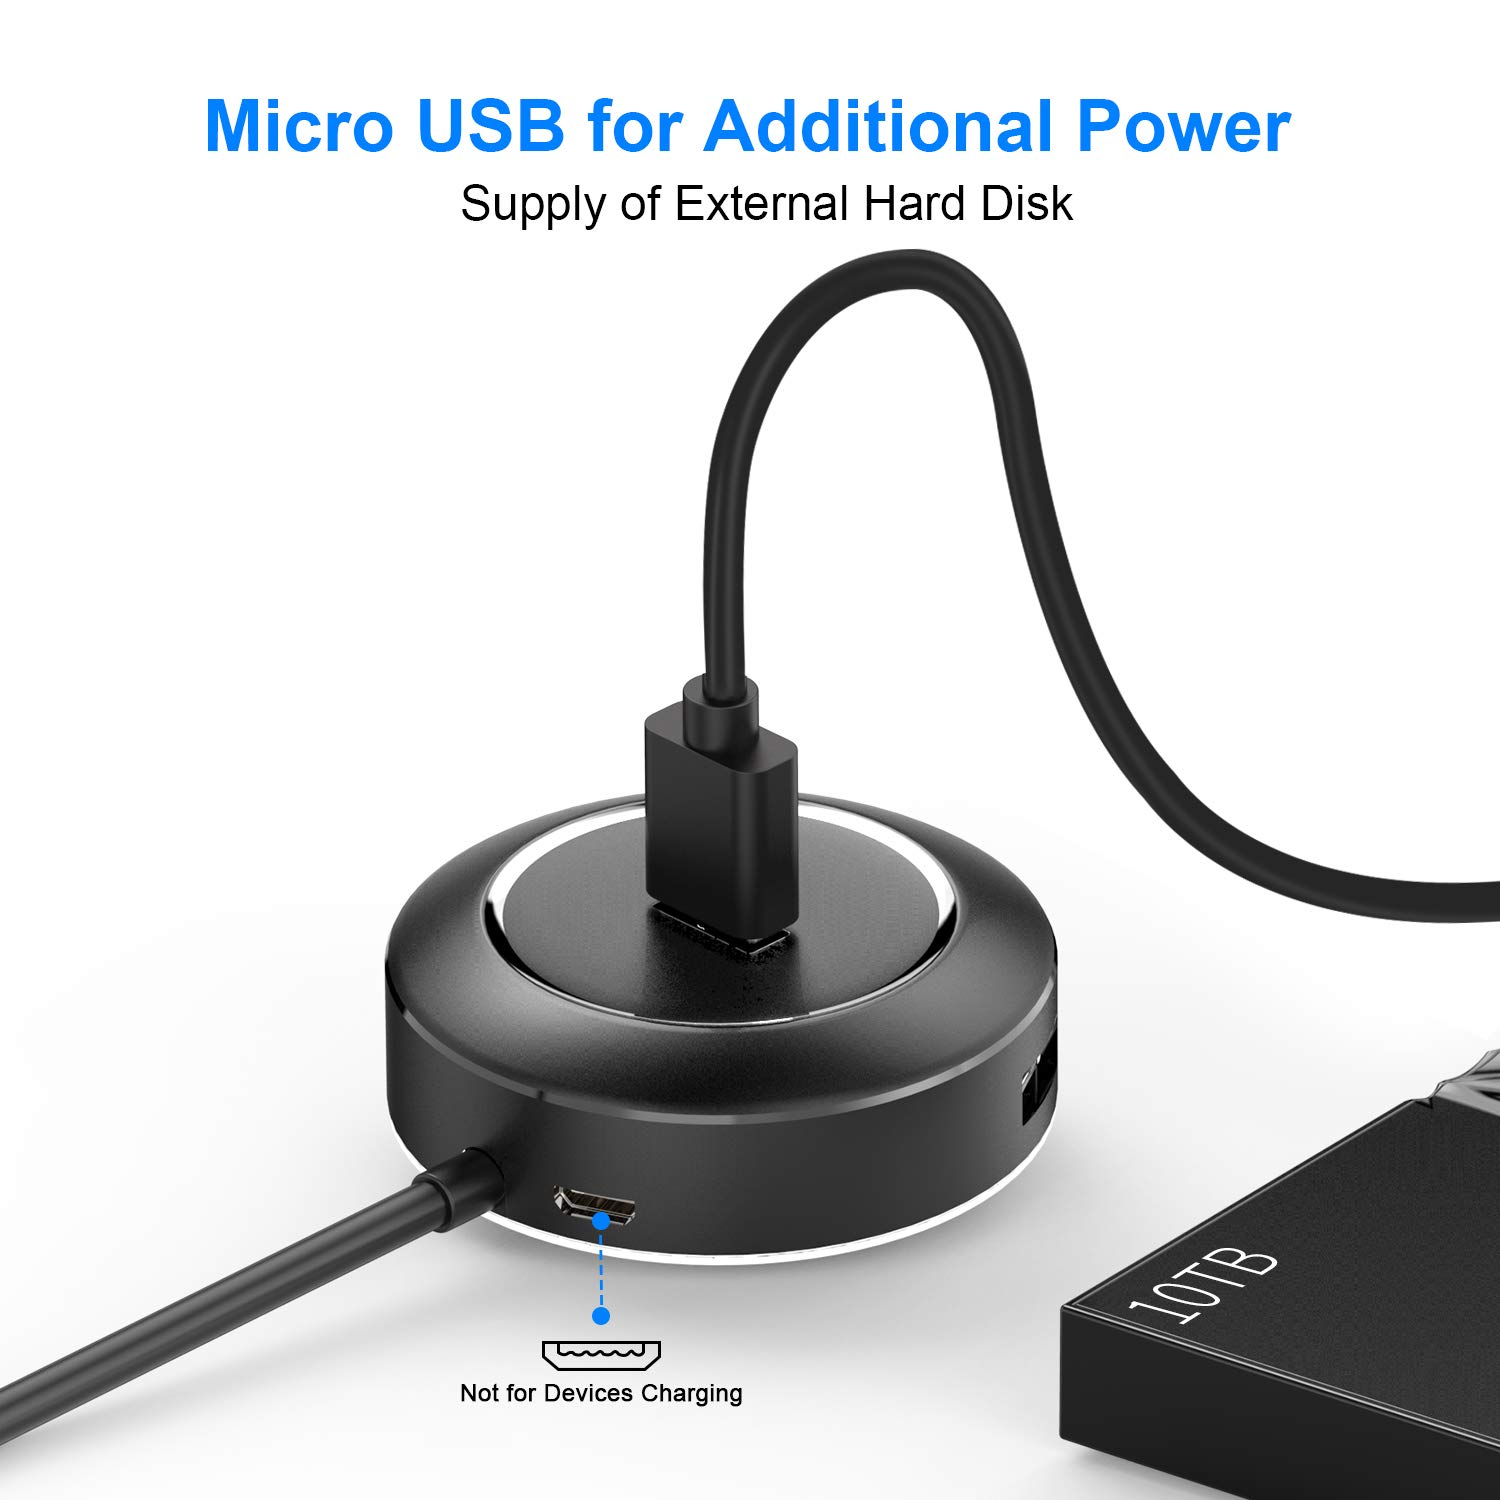 USB 2.0 Hub, USB C Hub, AOJI USB C to USB 3.0 Adapter, 1.5A Fast Charging and 5Gbps Data Transmission Speed with LED Indicator for MacBook Pro/Air, Chromebook, Surface Pro